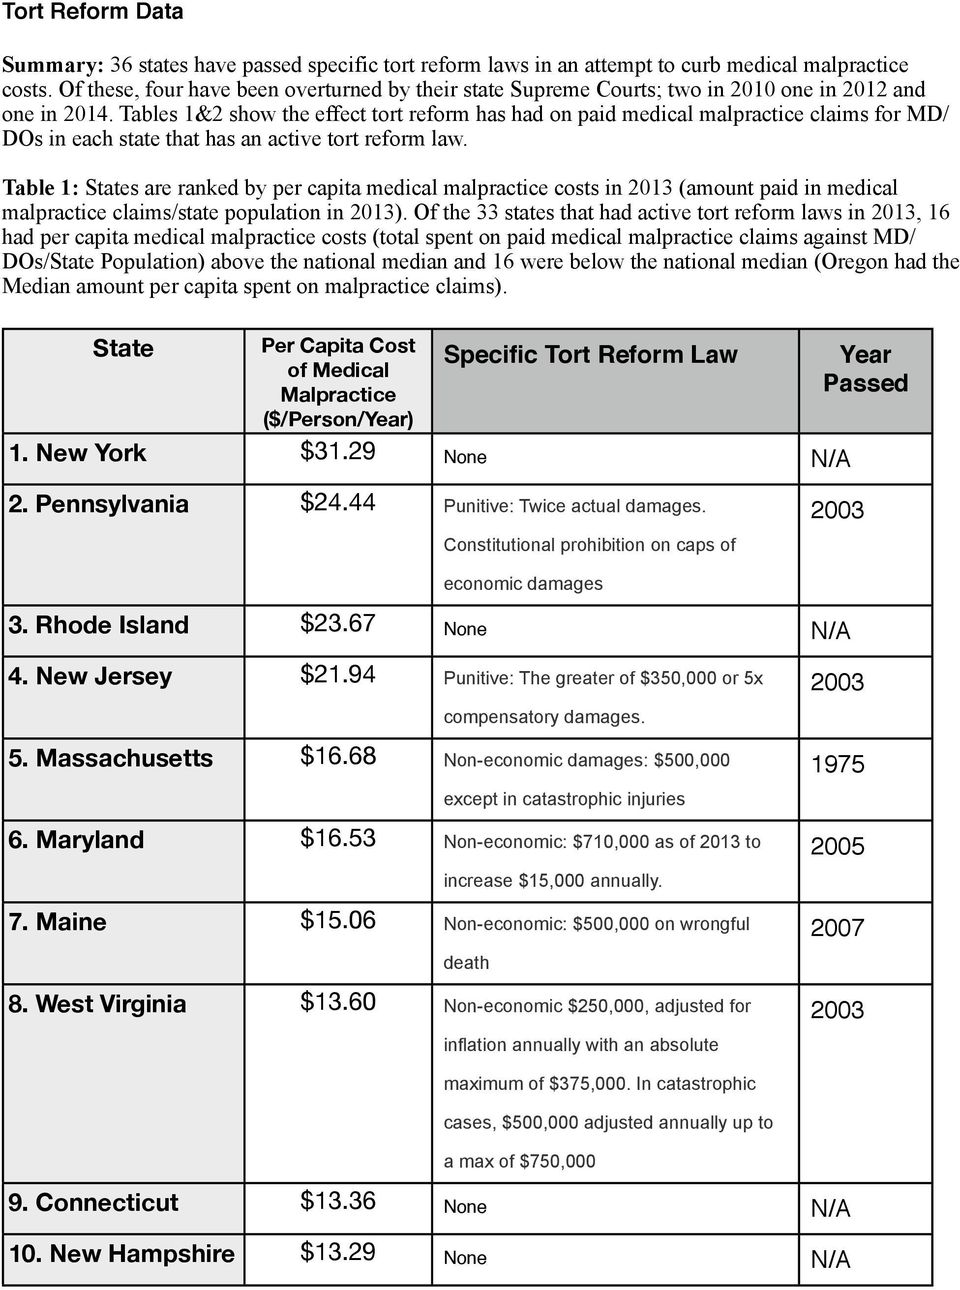 Tables 1&2 show the effect tort reform has had on paid medical malpractice claims for MD/ DOs in each state that has an active tort reform law.